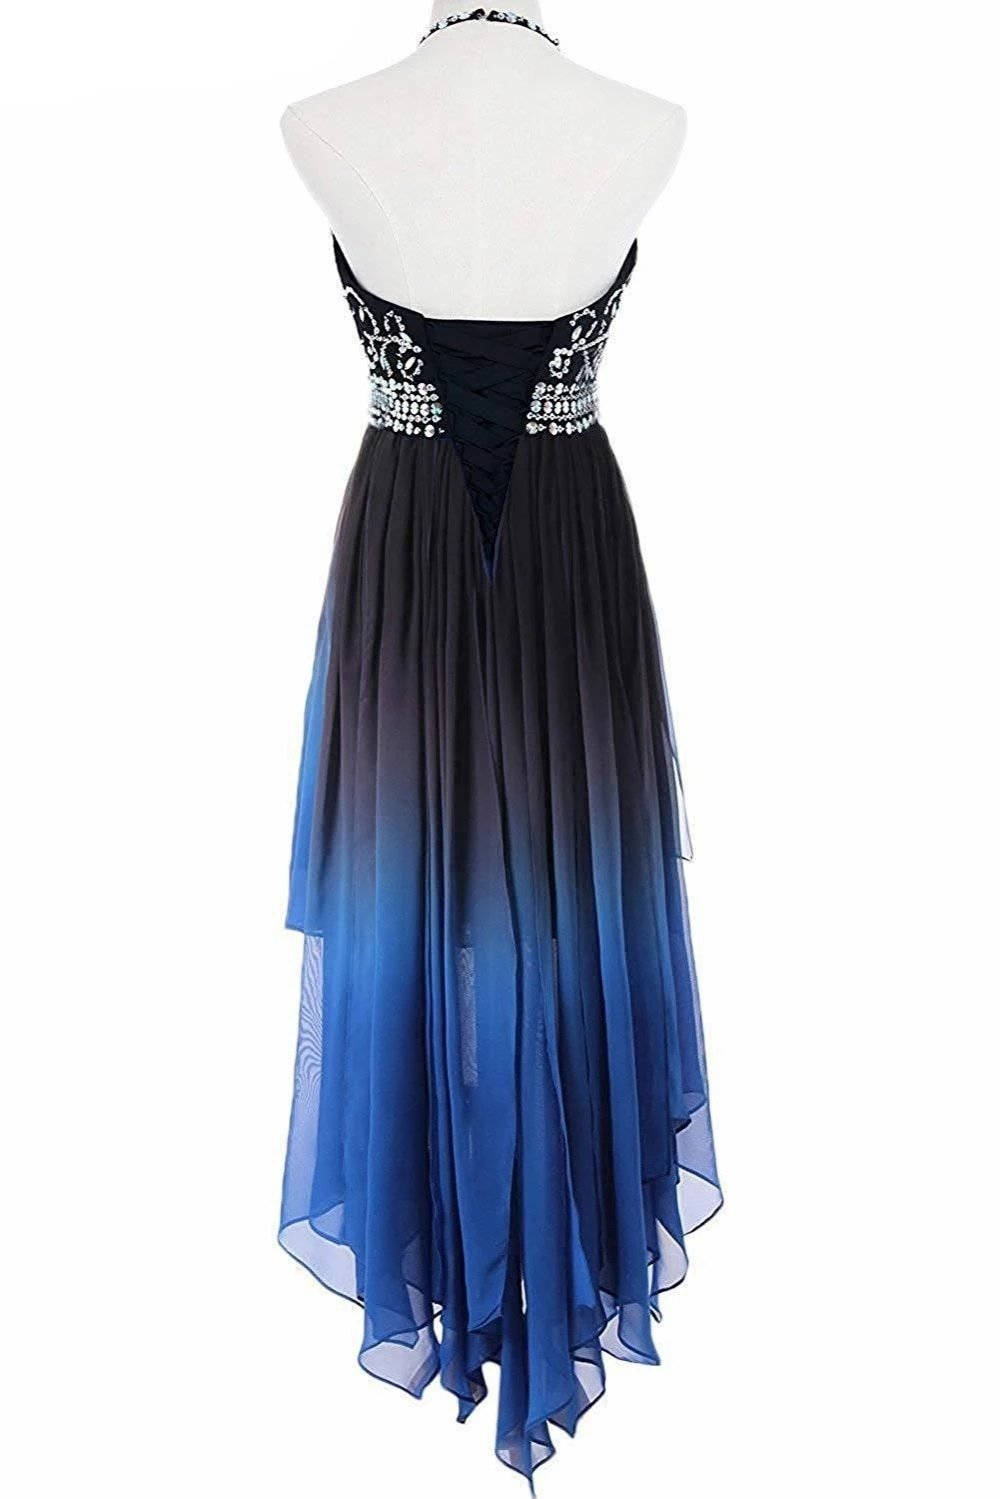 Ombre Gradient Chiffon Beads Homecoming Dresses With Sparkly Crystals 2019 High Low Beaded Blue Red Gala Dress for Women Halter Party Gown